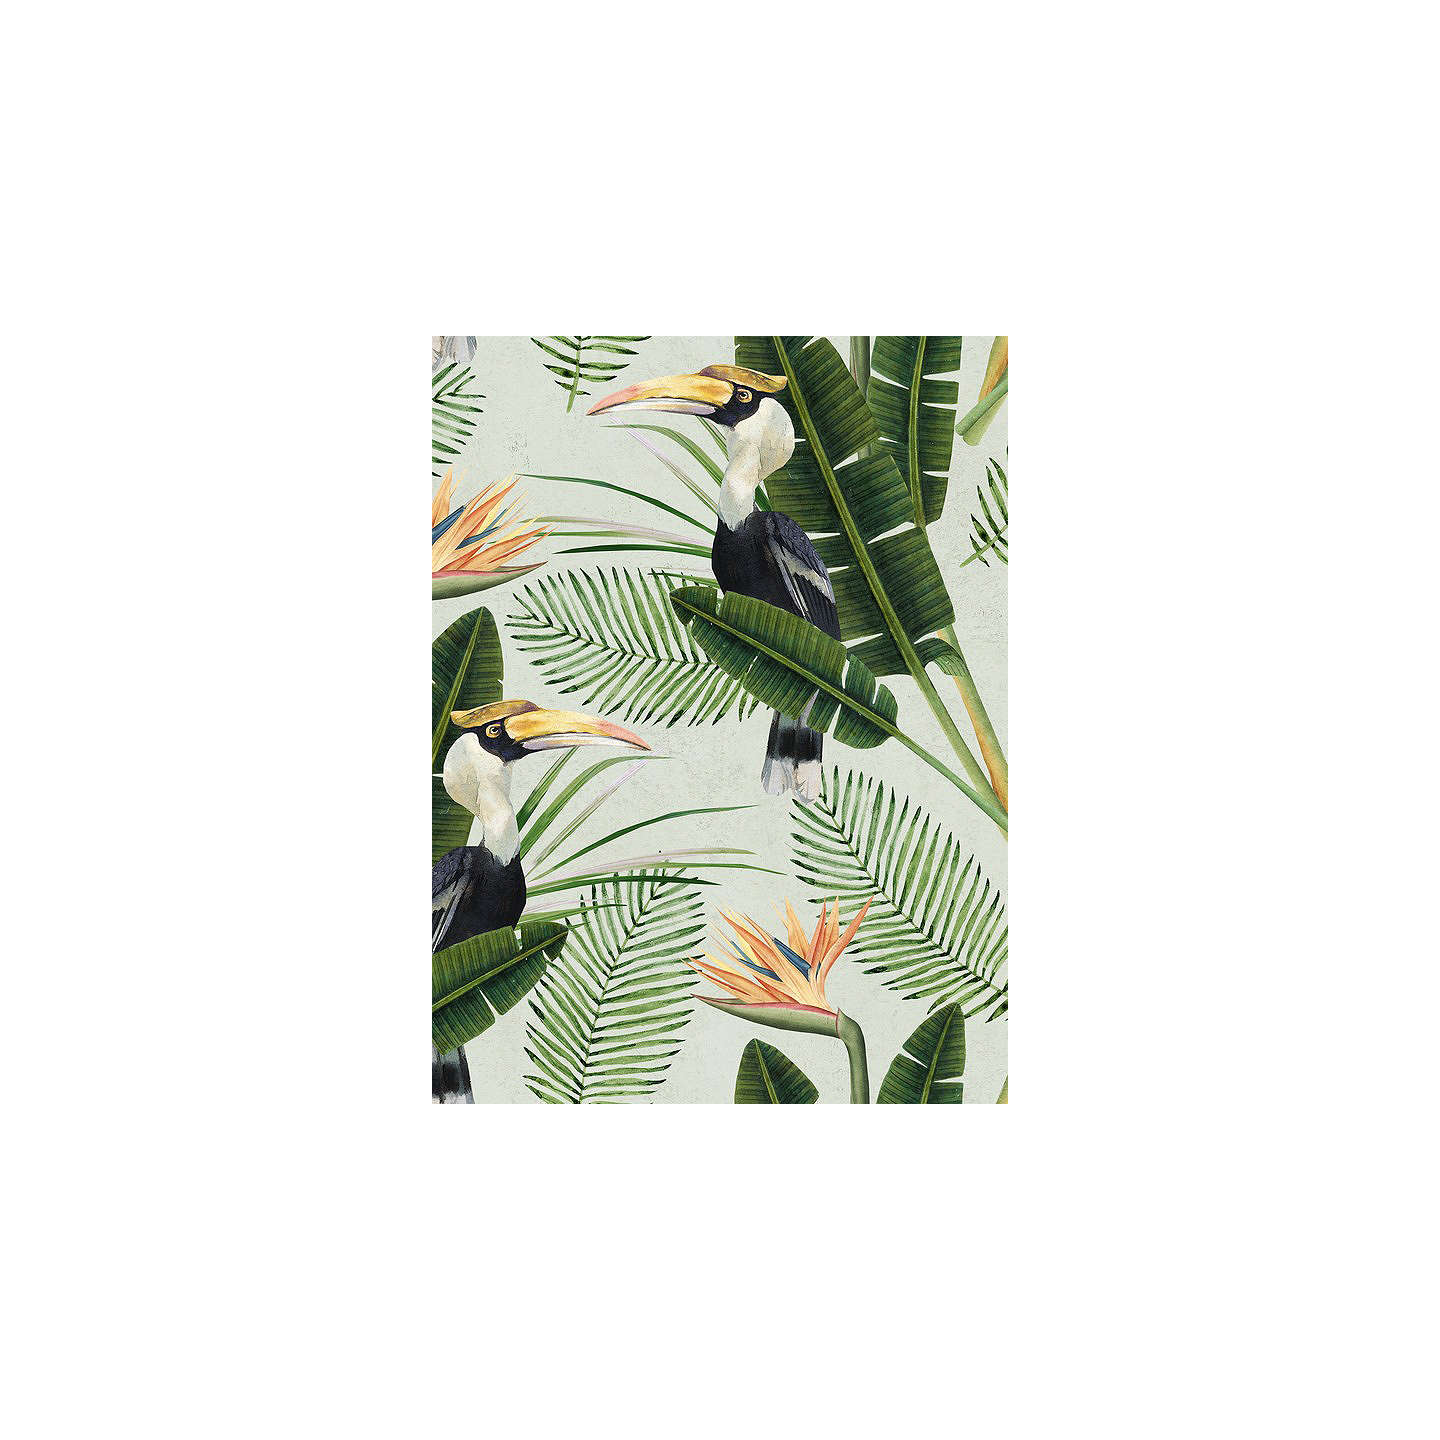 BuyMindtheGap Birds of Paradise Paste the Wall Wallpaper Set, WP20092 Online at johnlewis.com